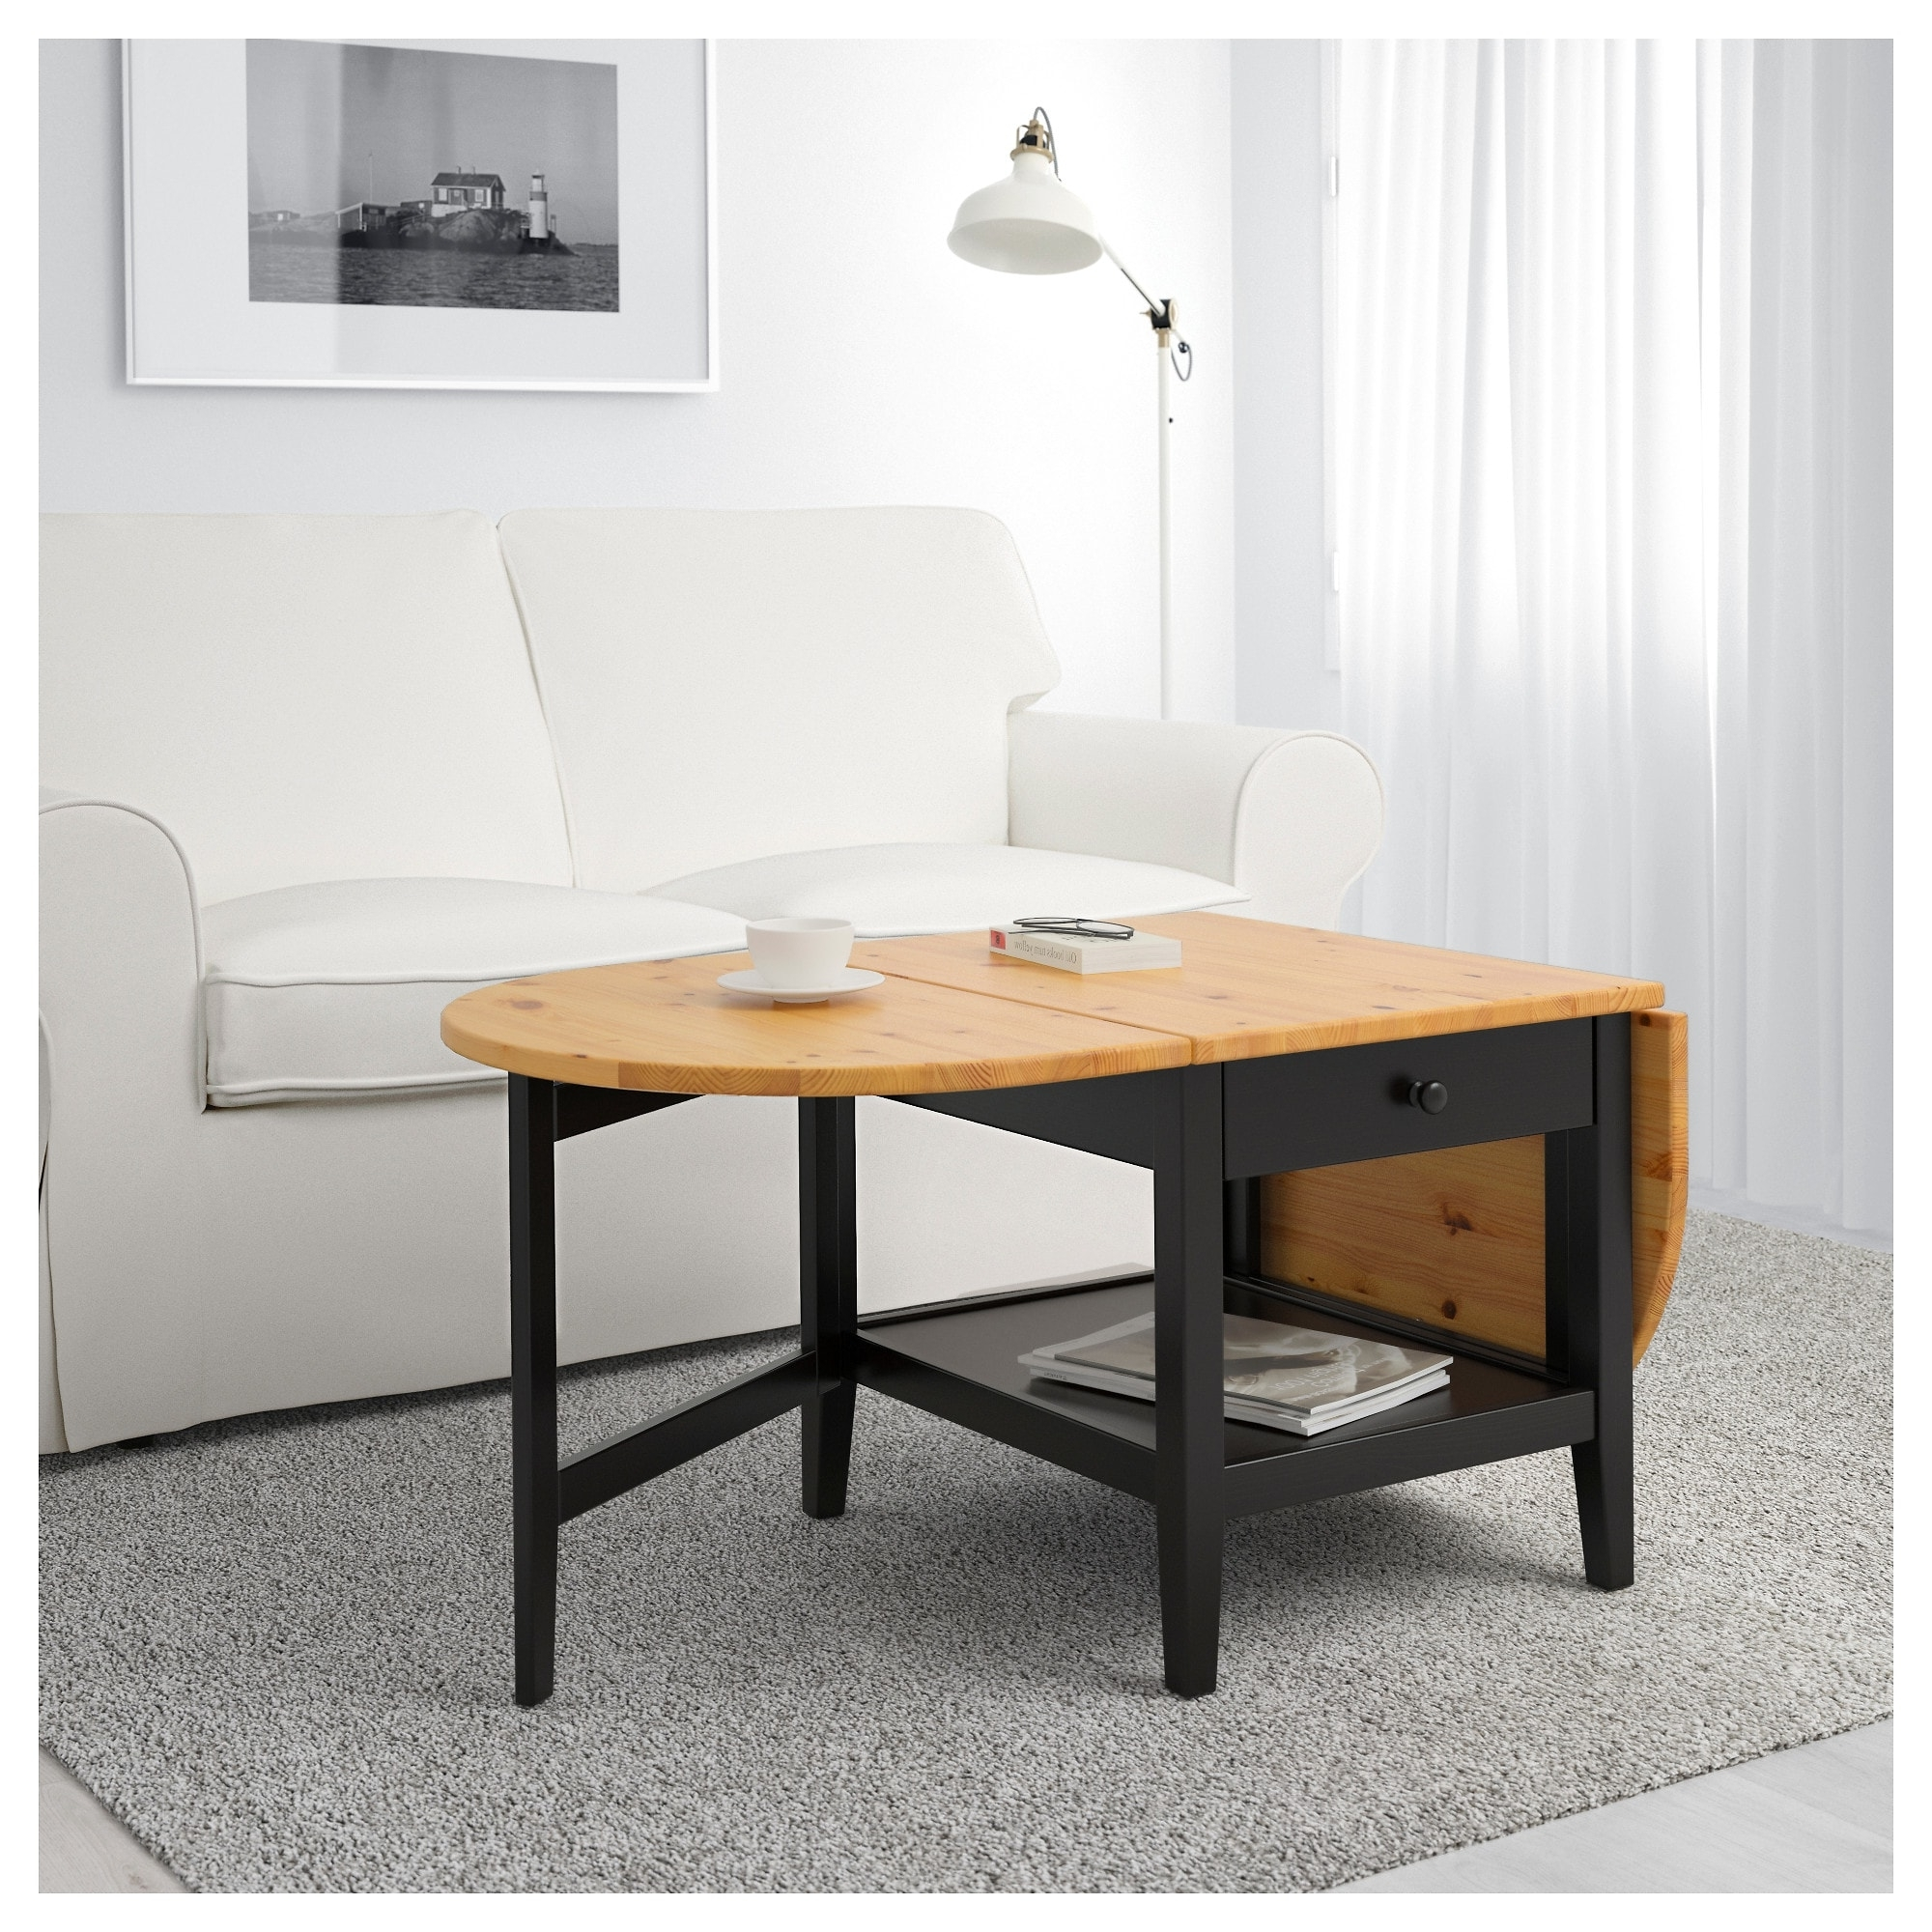 Arkelstorp Coffee Table Black 65 X 140 X 52 Cm – Ikea Within Most Recently Released Light Natural Coffee Tables (View 13 of 20)